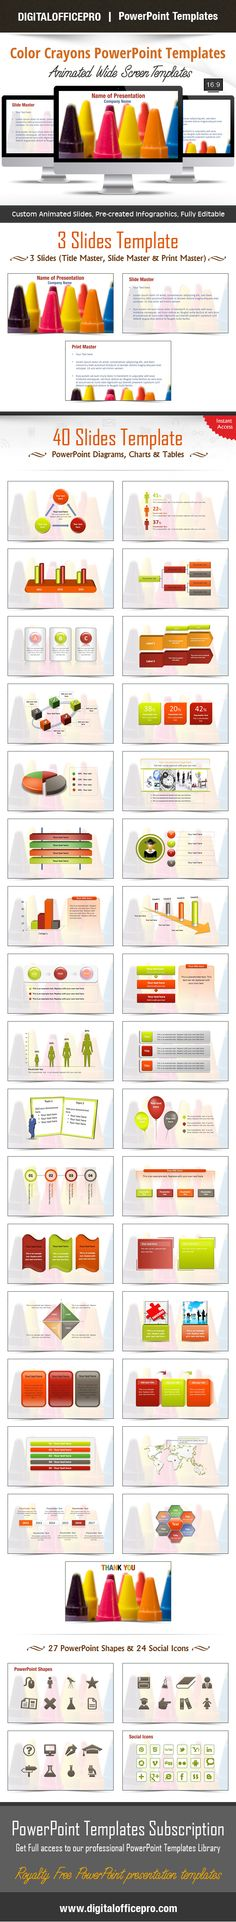 Color crayons powerpoint template backgrounds color crayons color crayons powerpoint template backgrounds toneelgroepblik Images